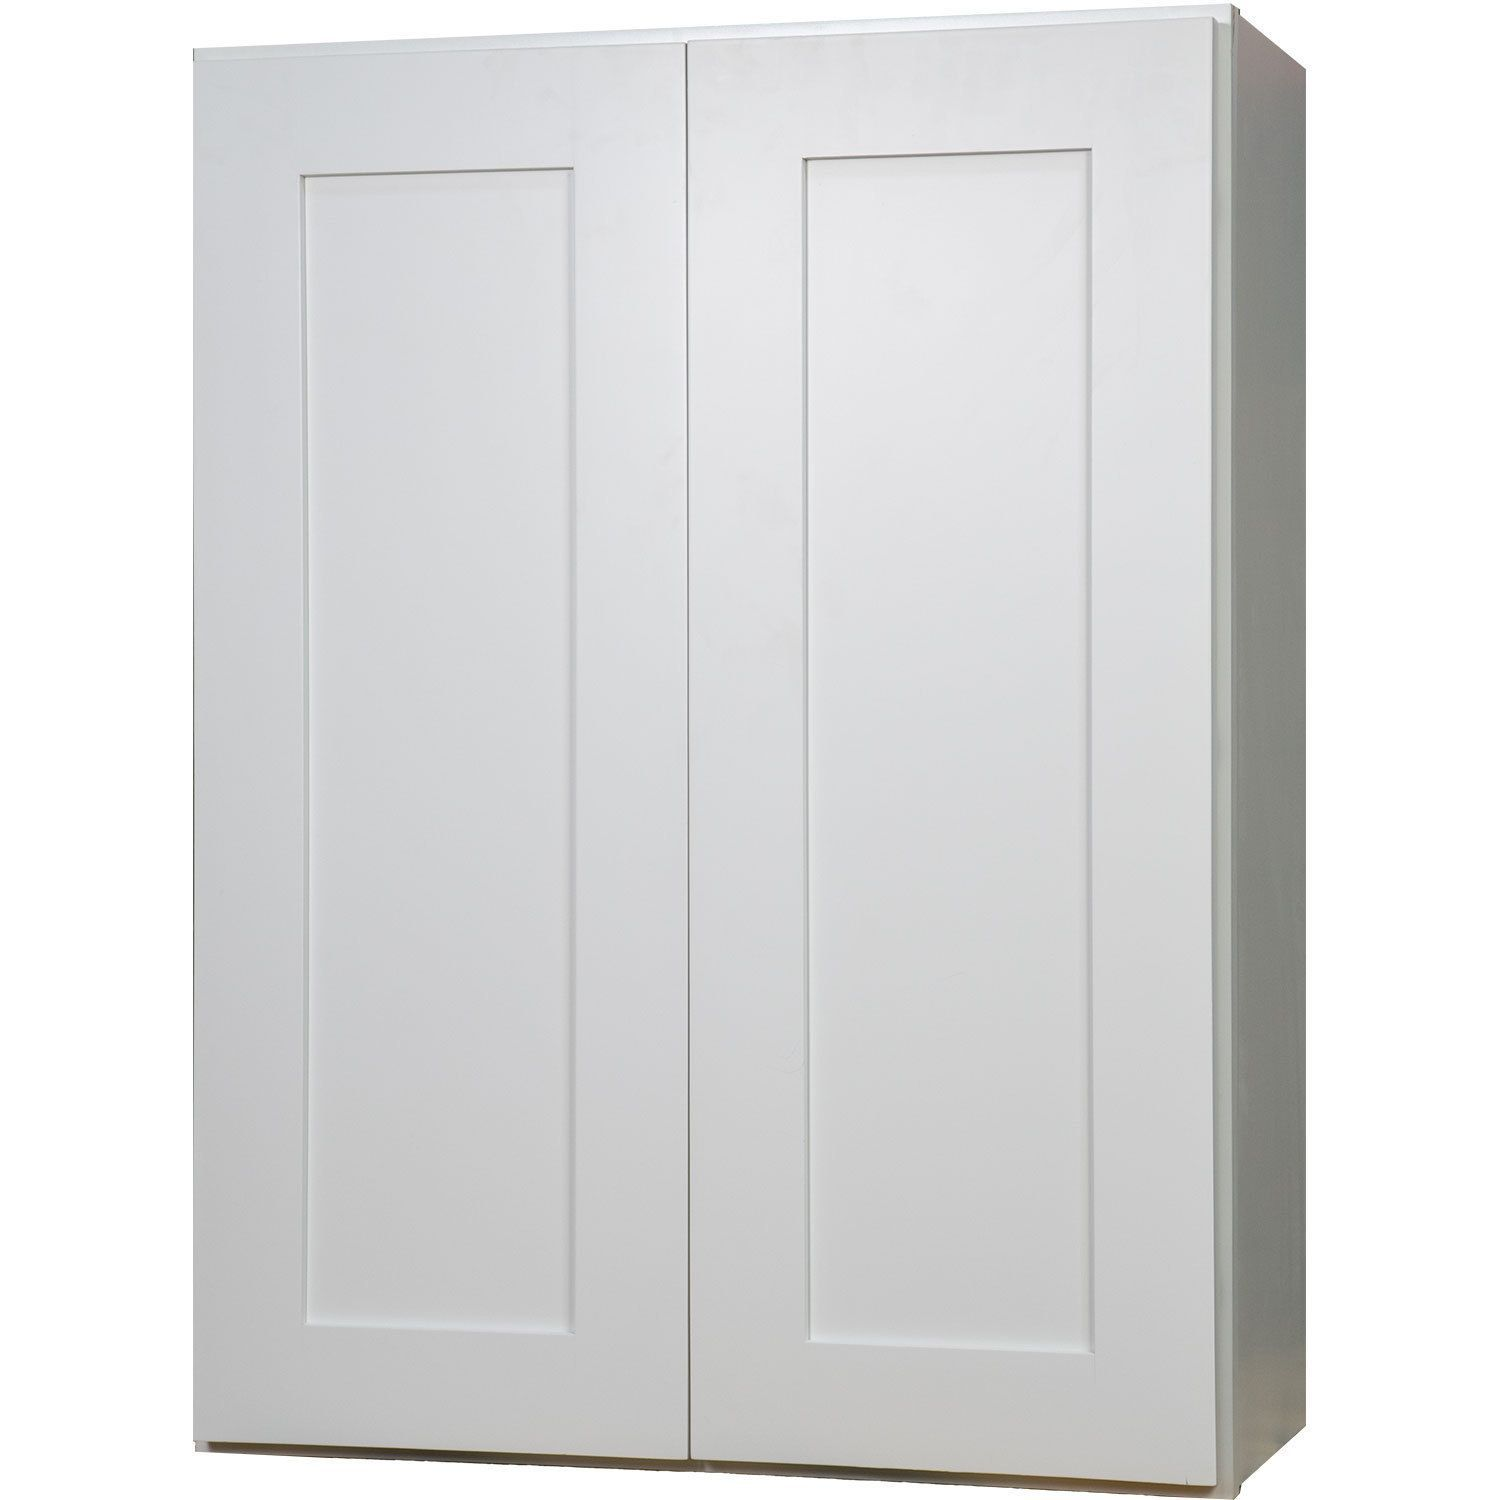 Everyday Cabinets 24 Inch White Shaker Double Door Wall Kitchen Cabinet White Shaker Kitchencabinetsqu Adjustable Shelving Wall Cabinet Wall Mounted Cabinet